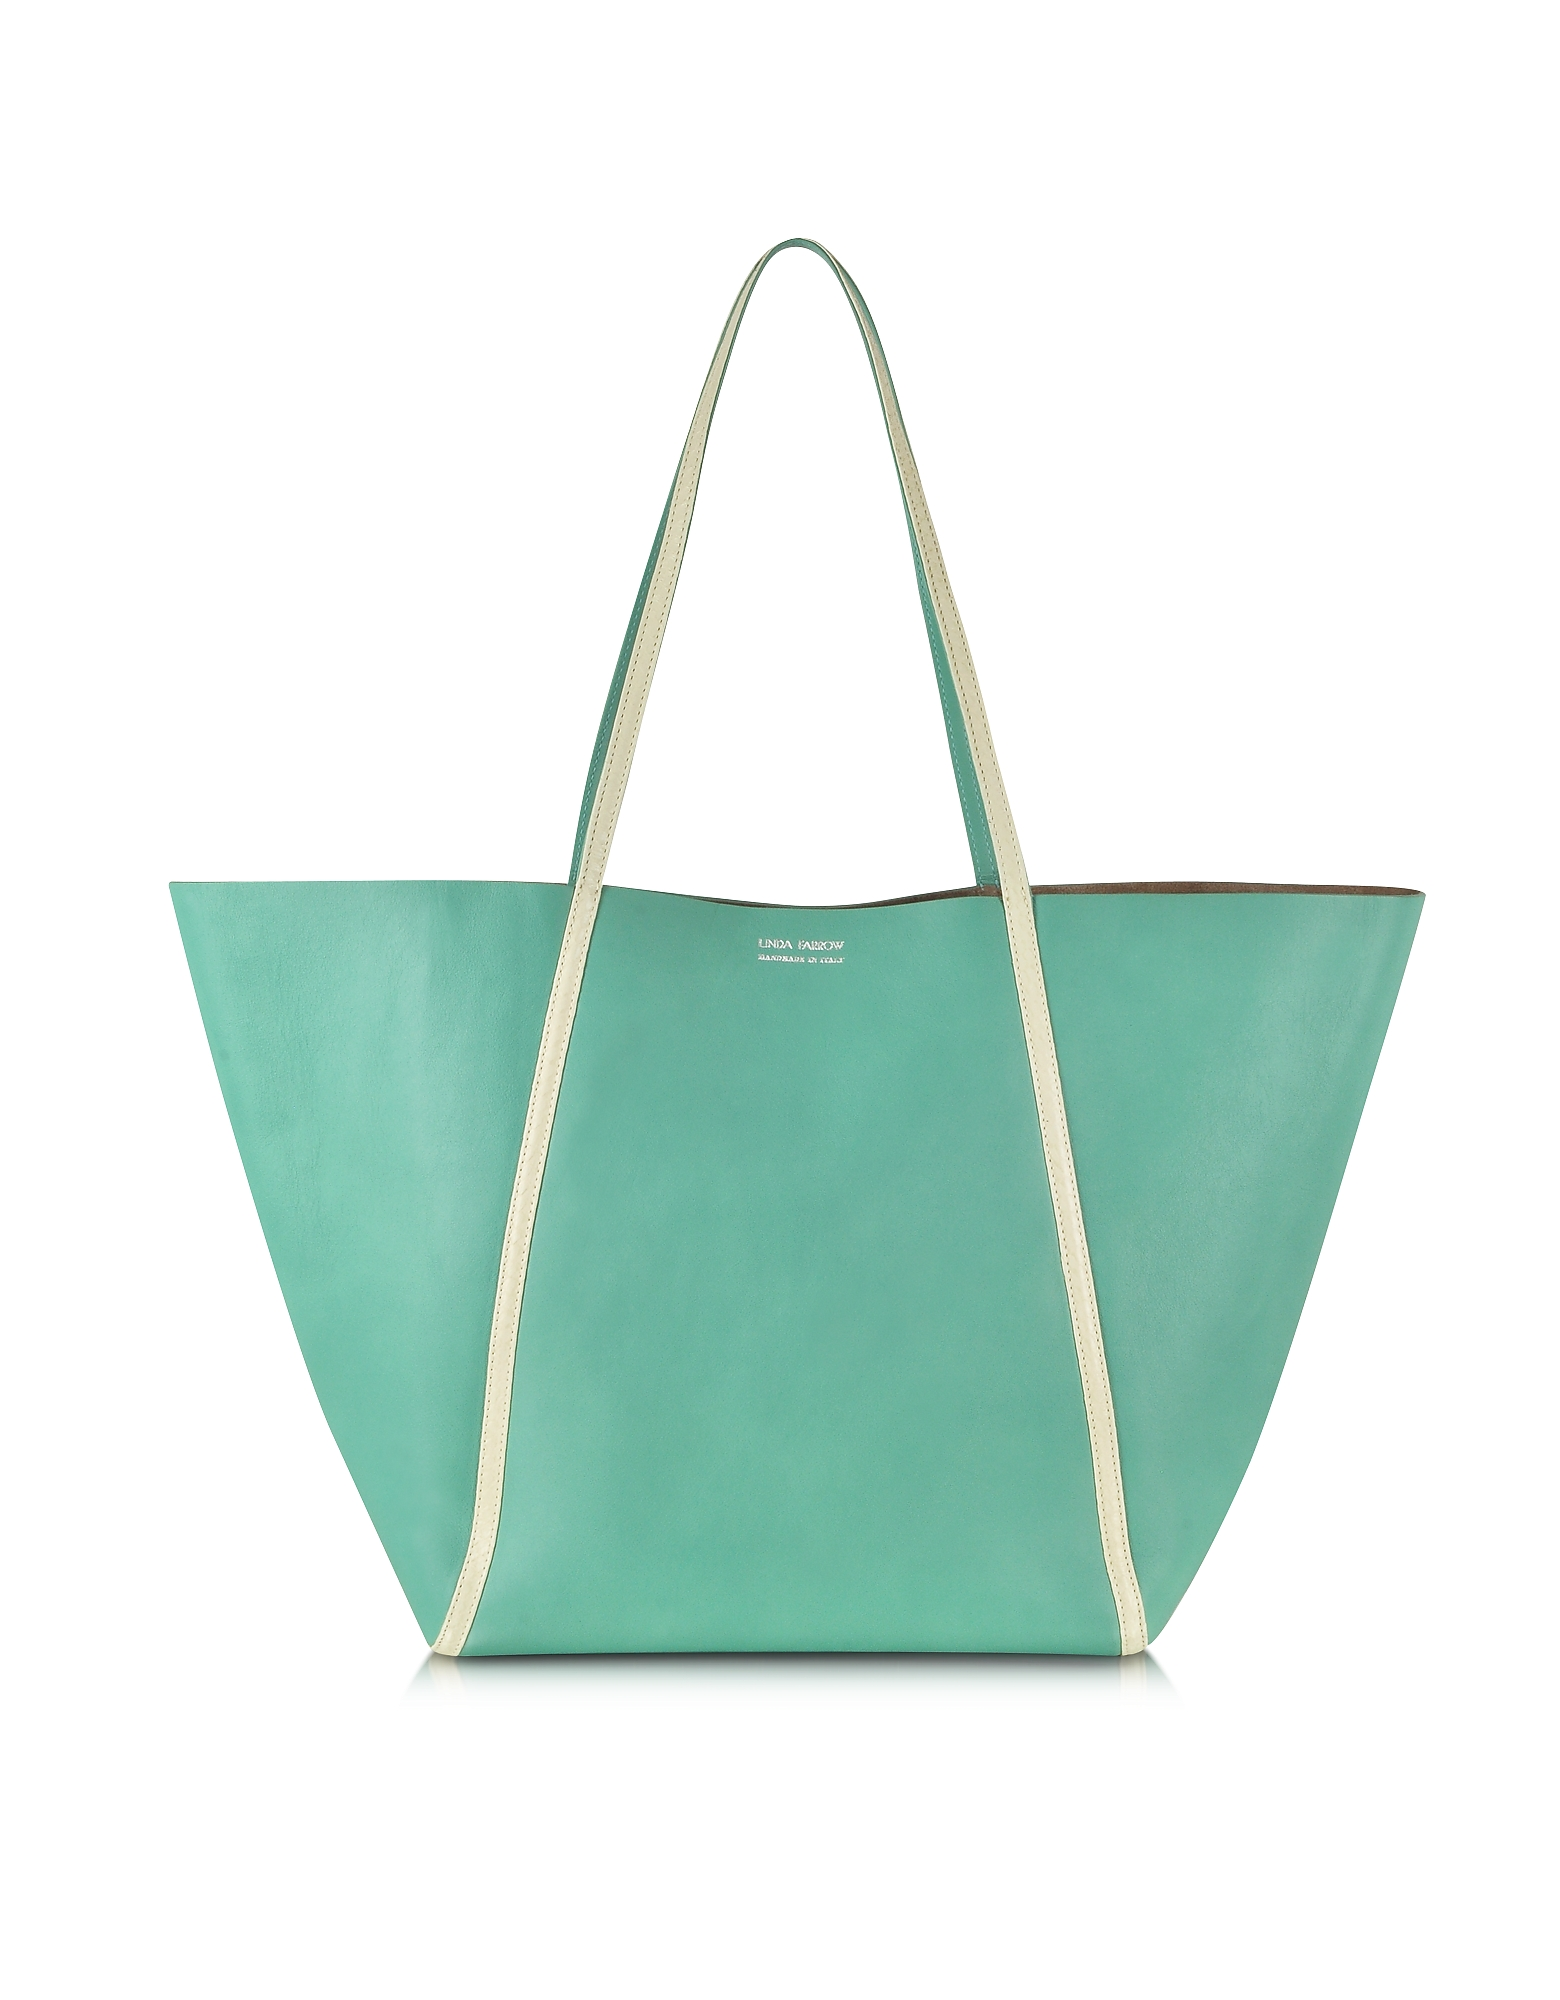 Linda Farrow Handbags, Pale Yellow Ayers and Green Calf Leather Tote